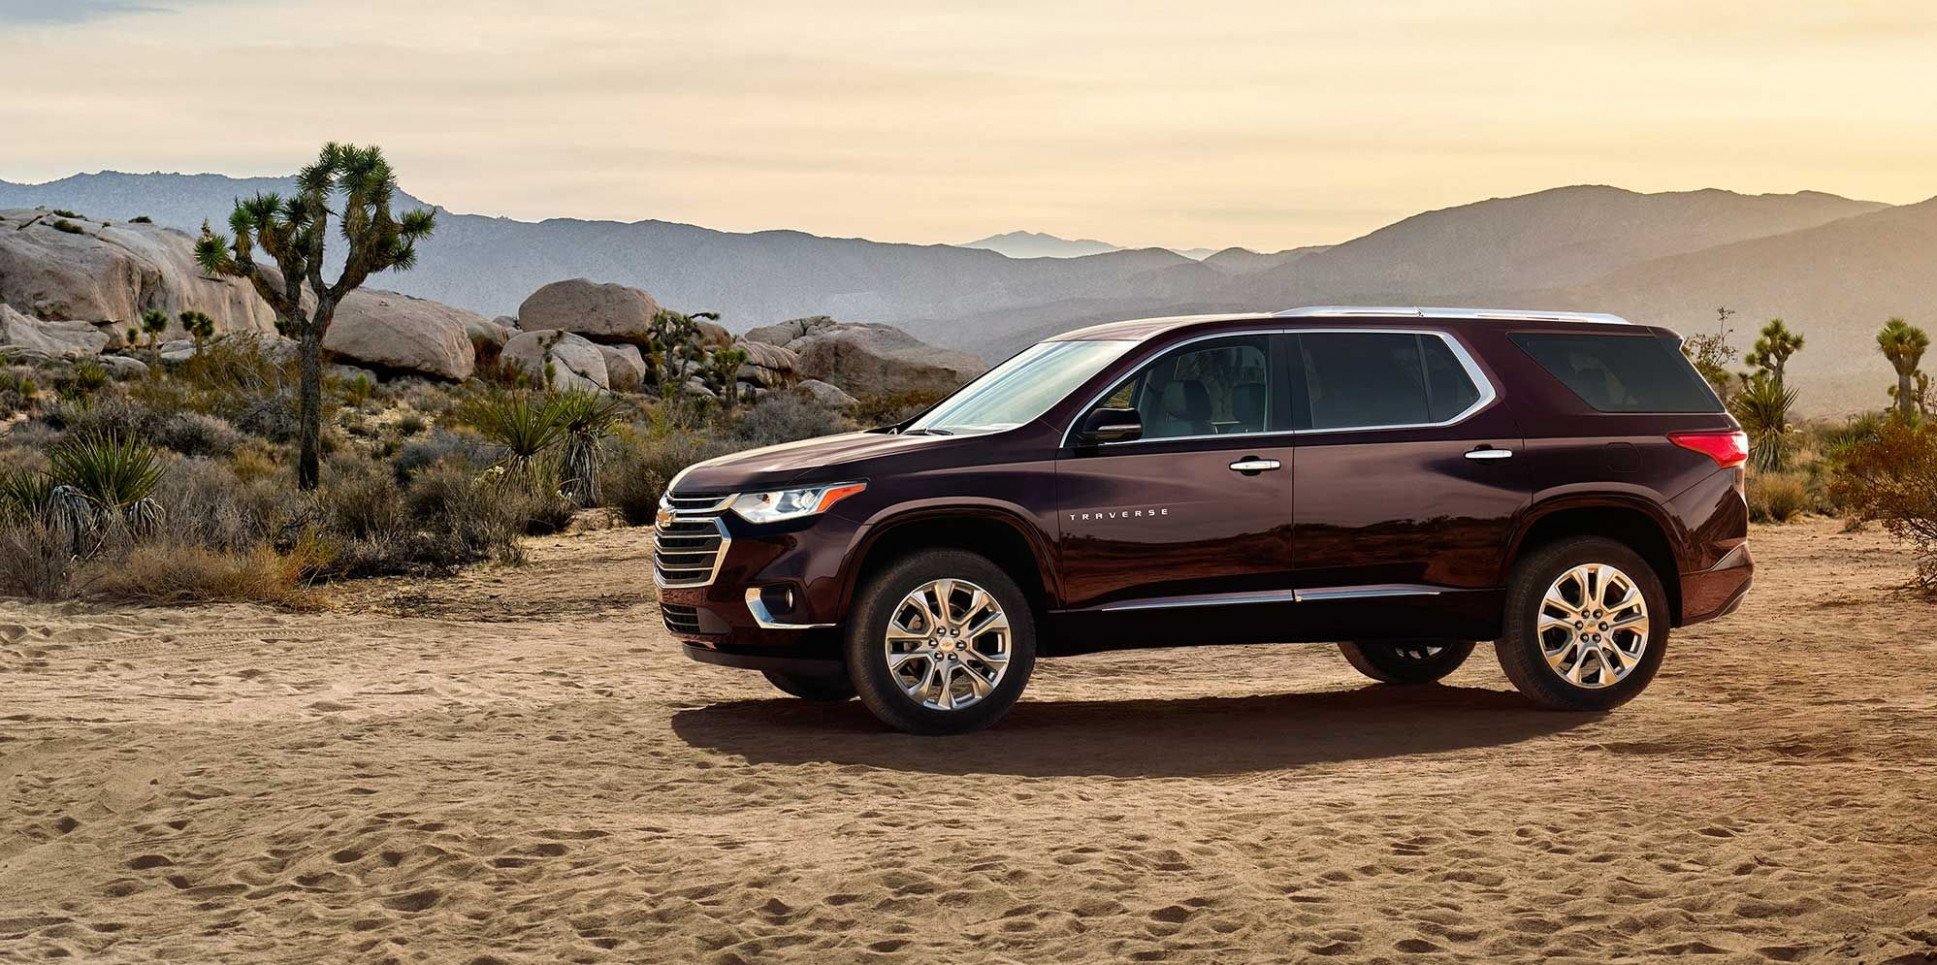 7 Chevrolet Traverse Review, Pricing, and Specs